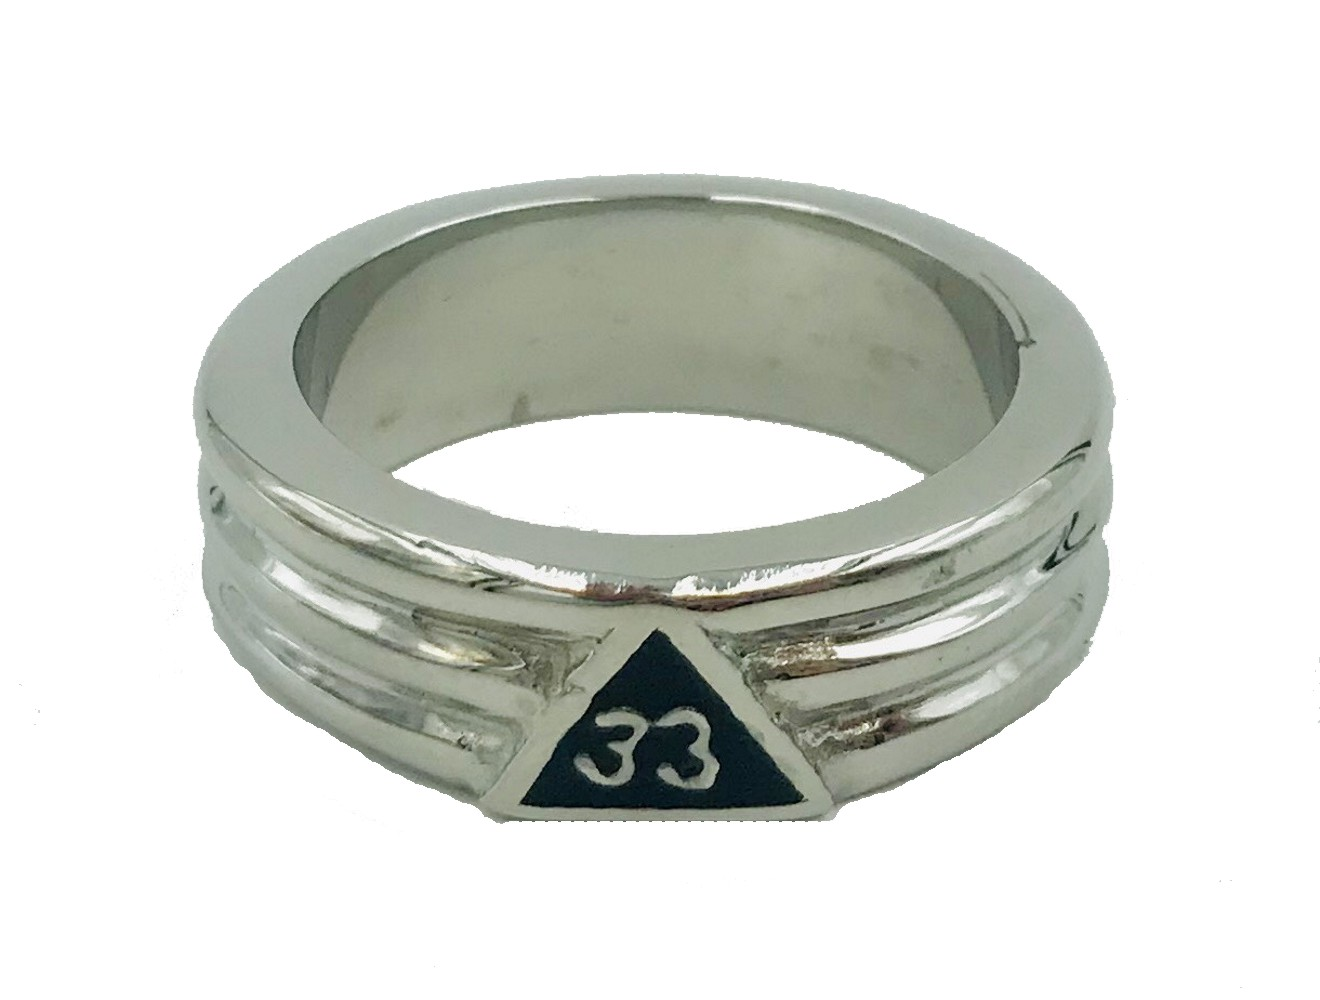 33rd Degree Ring in Stainless Steel Layered in Rhodium - Click Image to Close